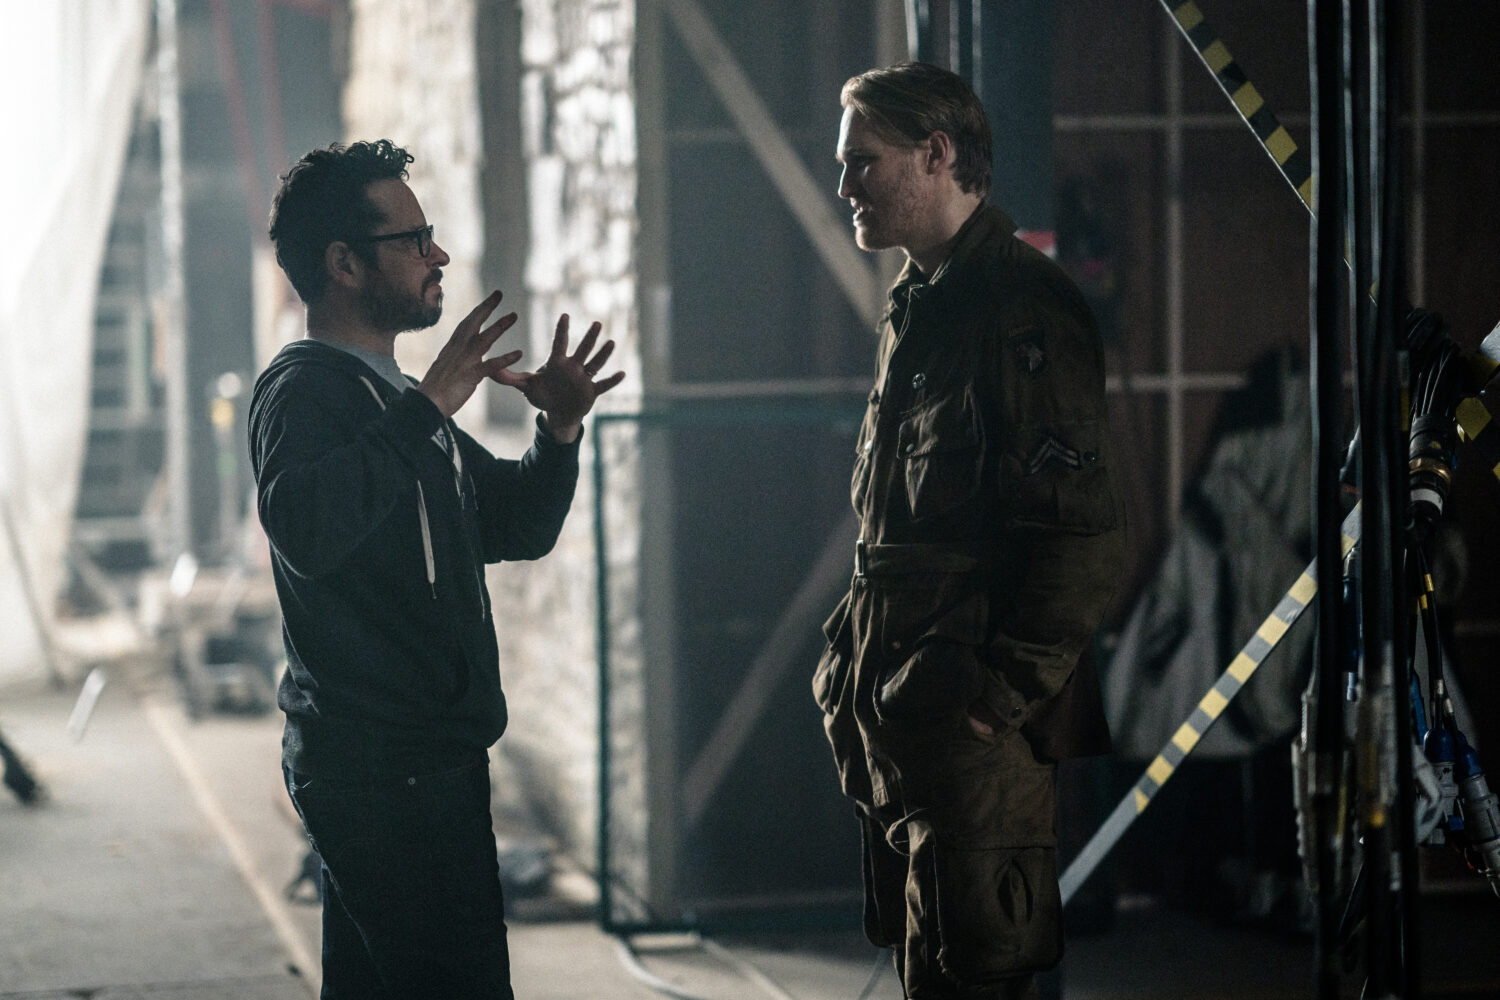 J.J. Abrams On The Set of Overlord